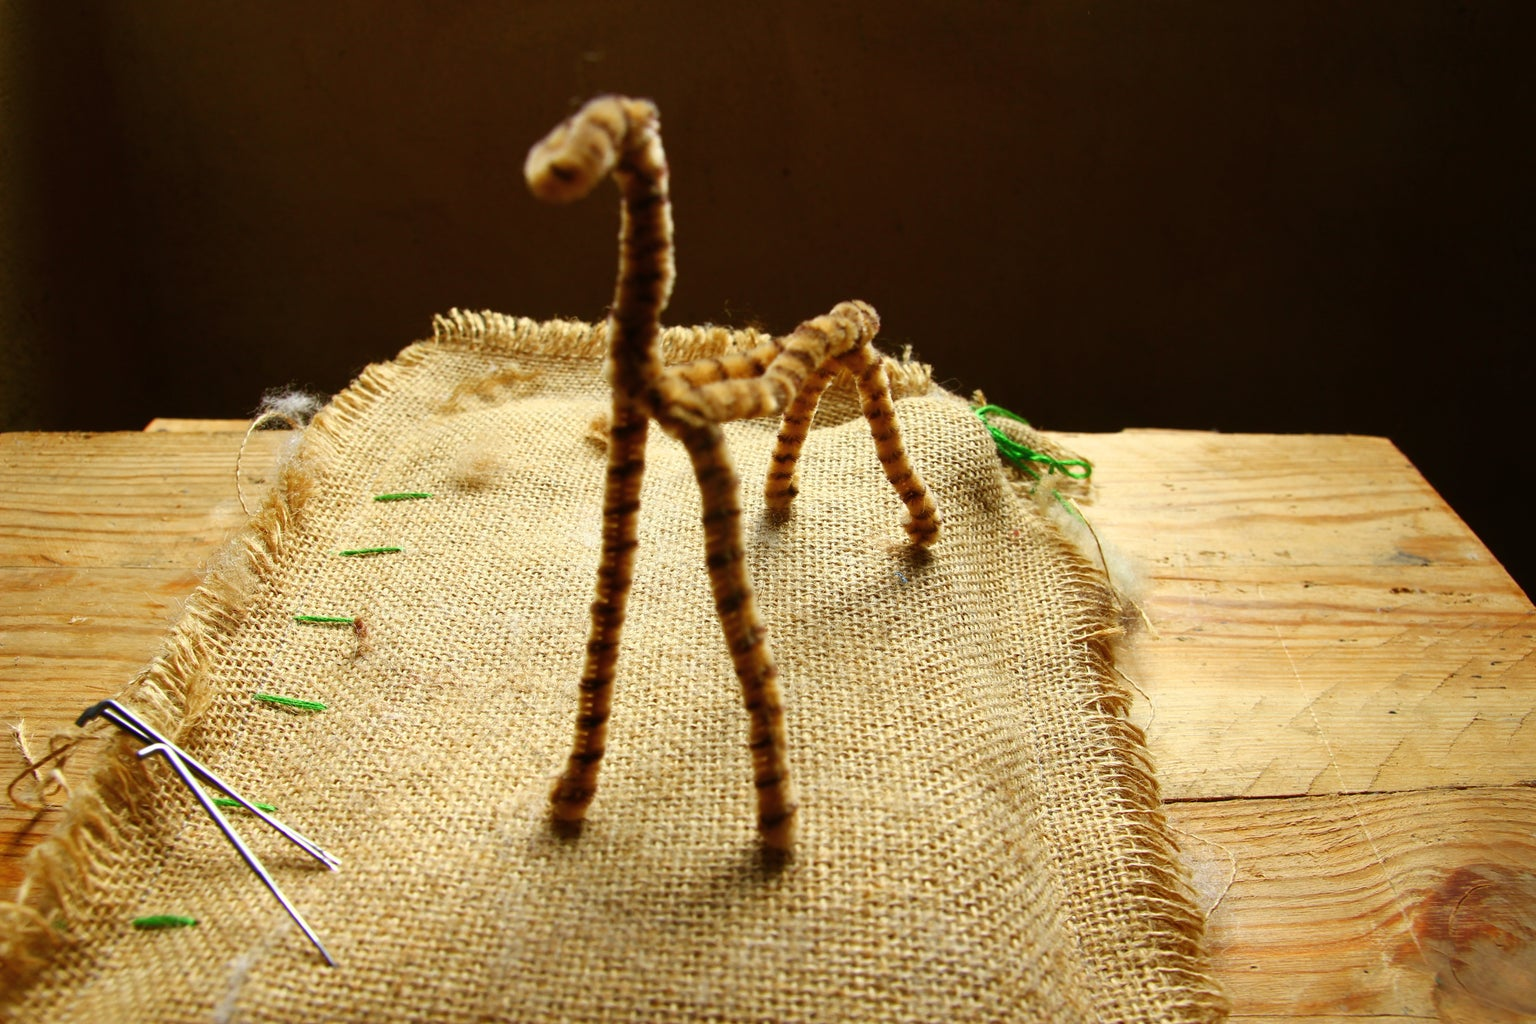 Making the Armature